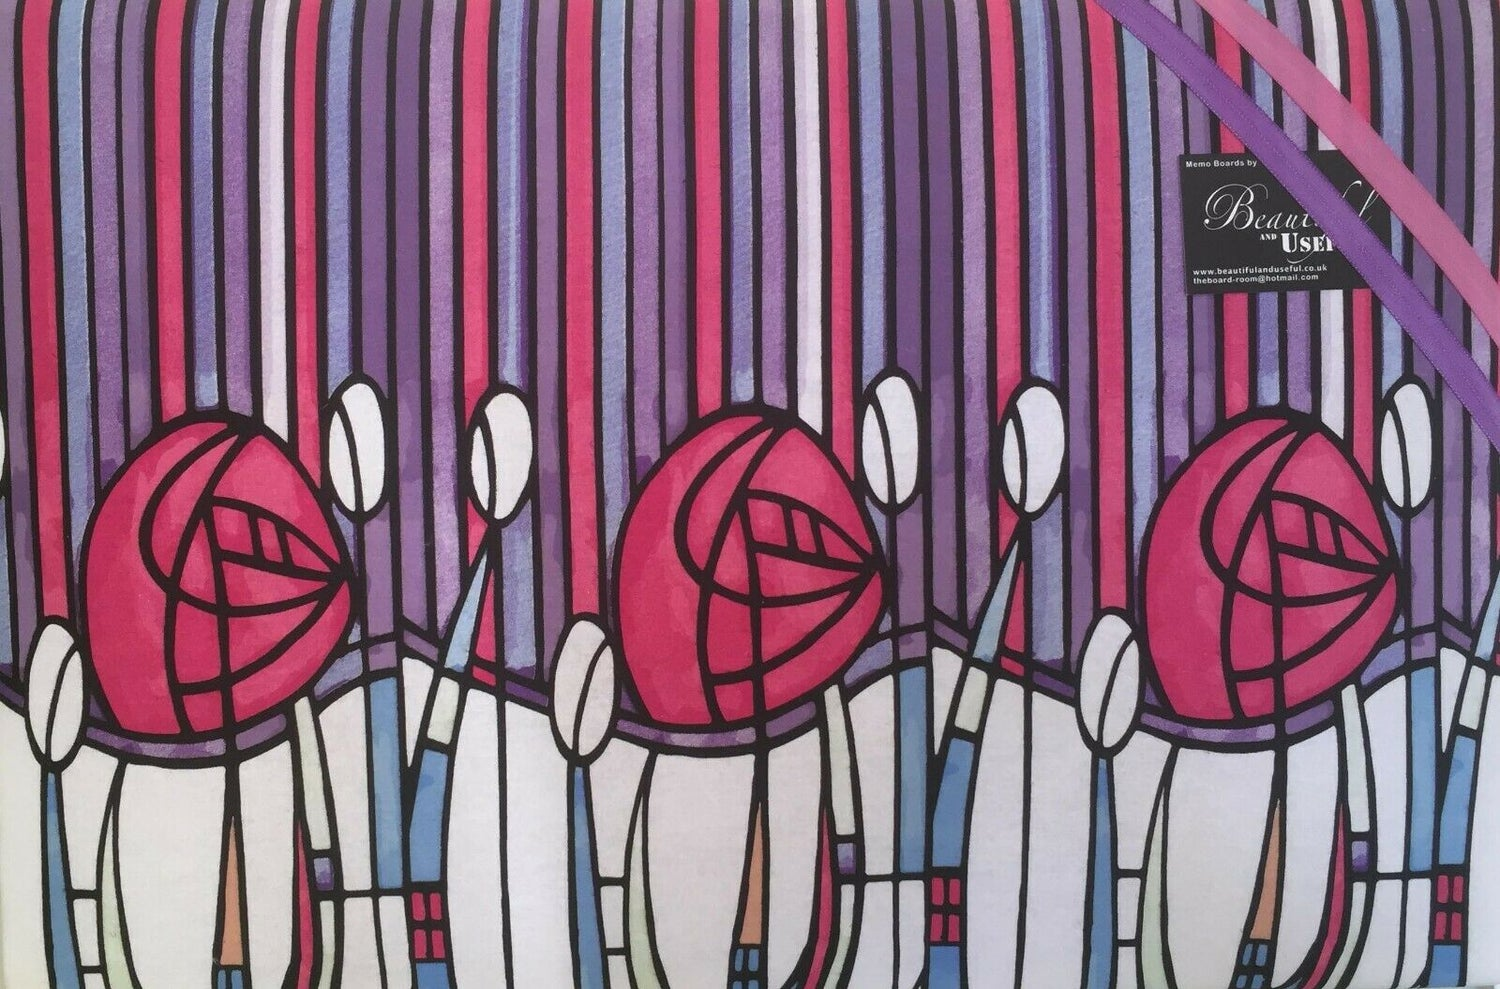 Image of Charles Rennie Mackintosh Roses fabric covered,Art Nouveau/Deco,Pin board